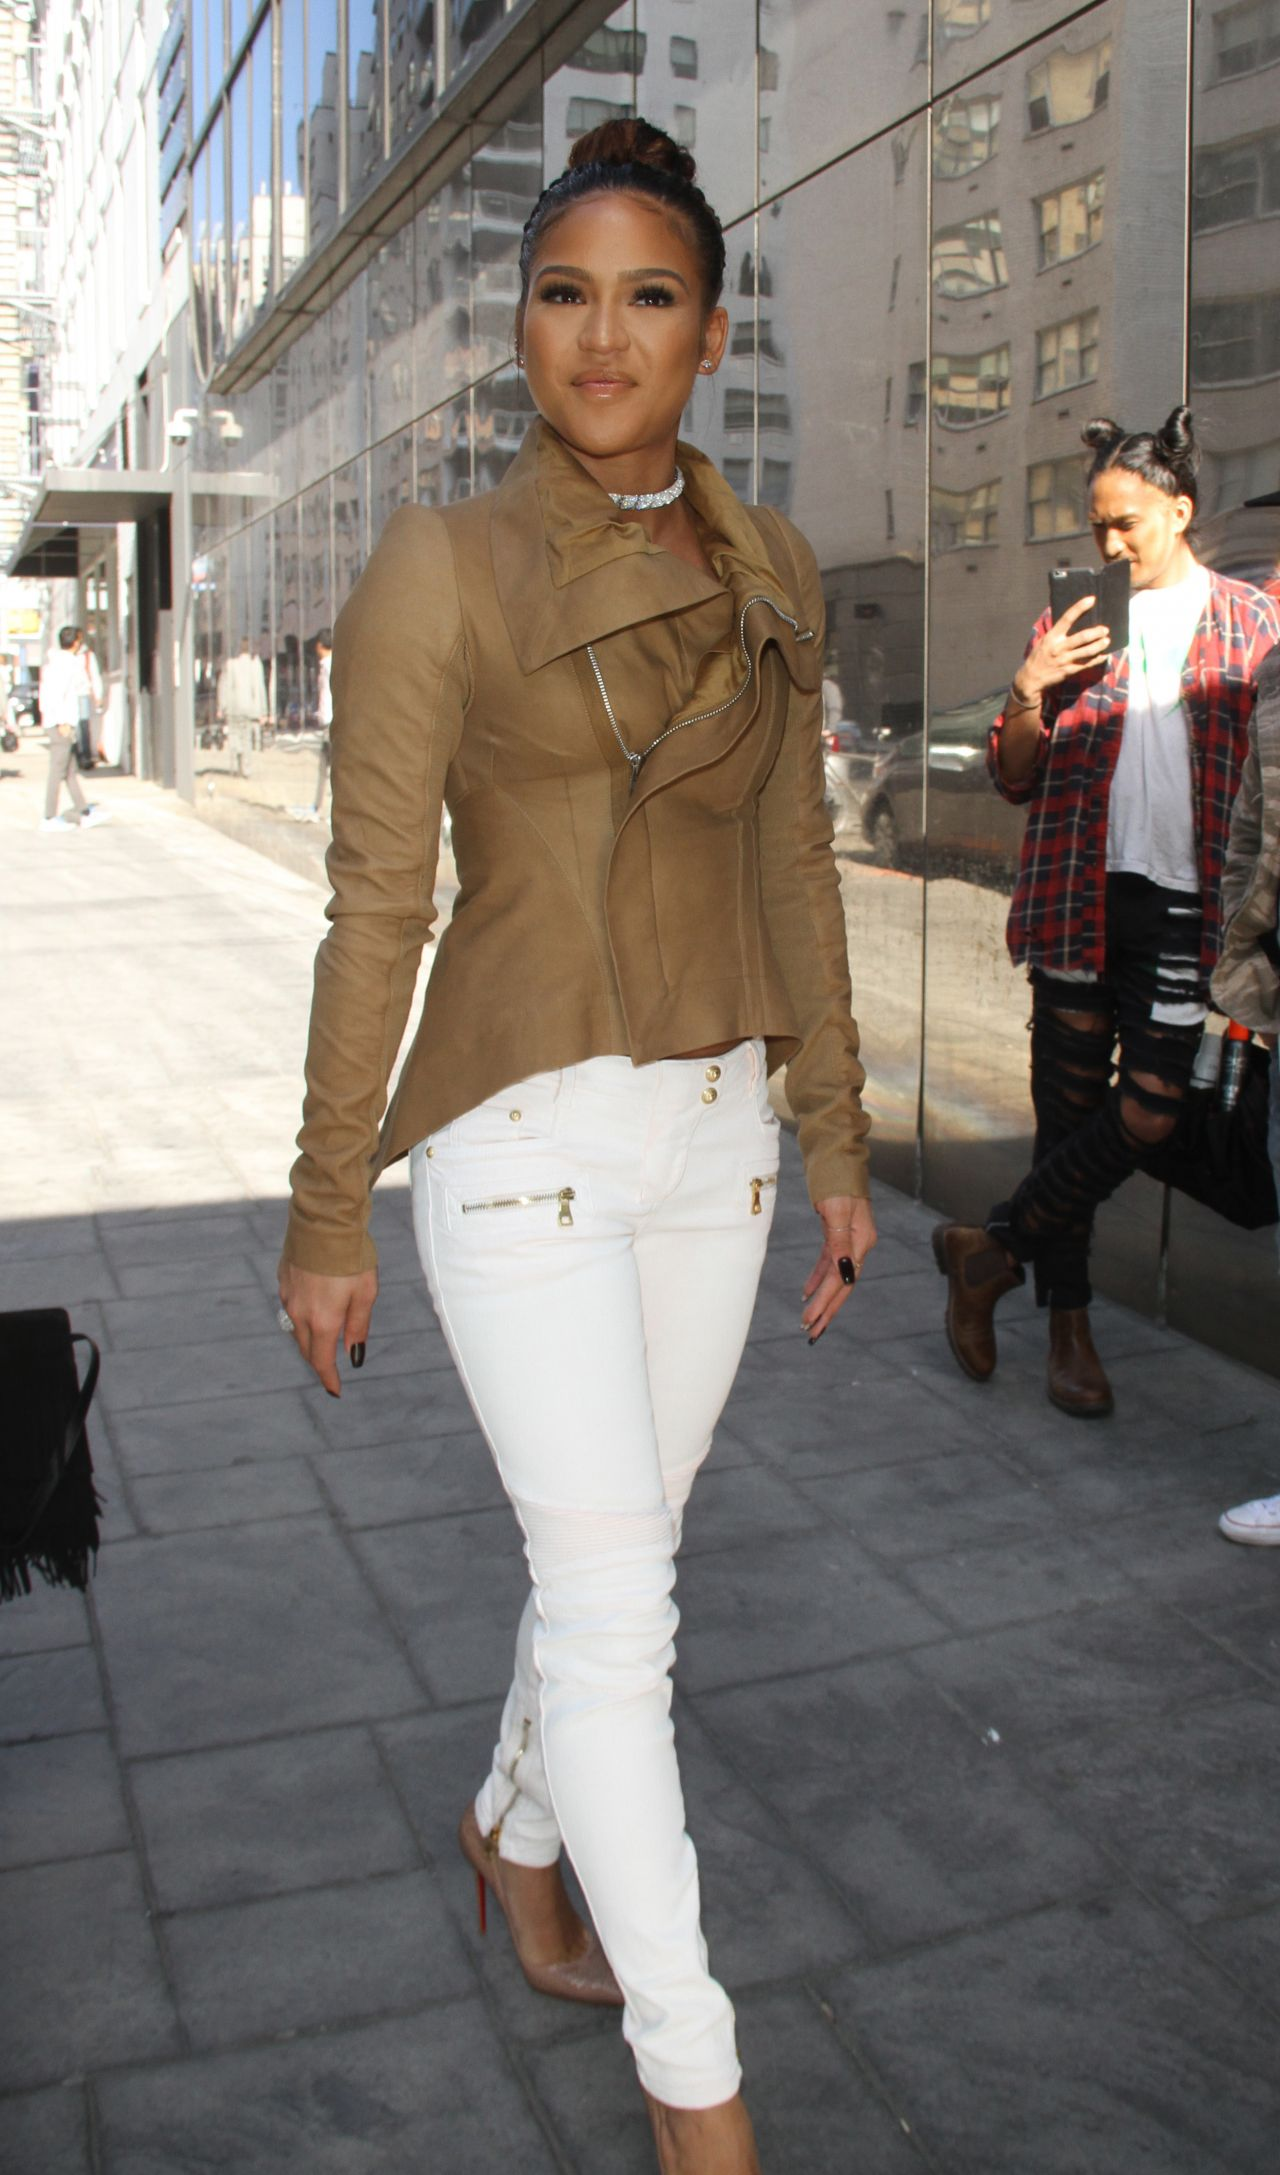 cassie ventura casual style out in nyc 3102016